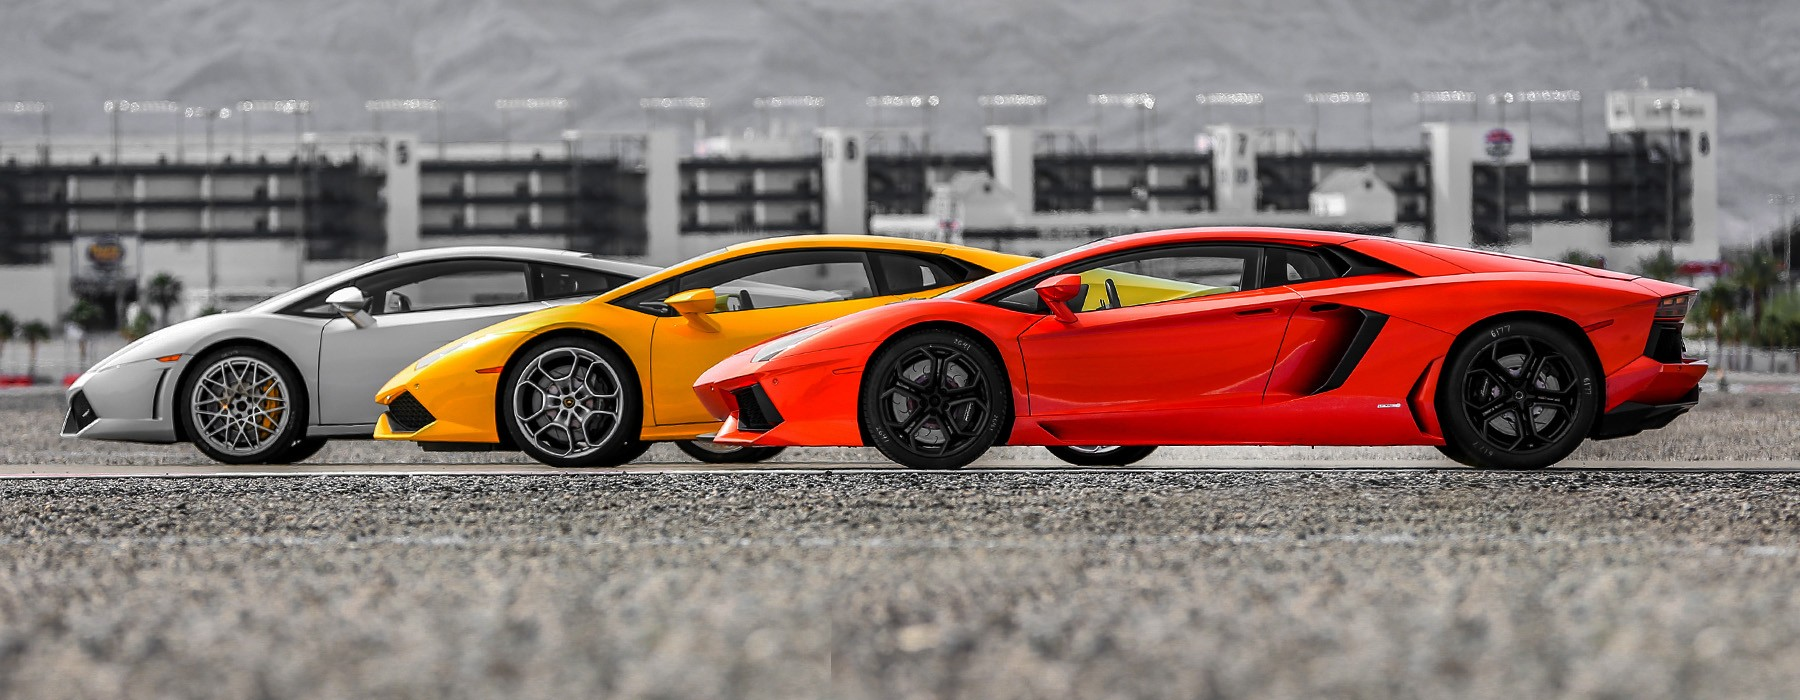 drive a lamborghini supercar on a professional racetrack with